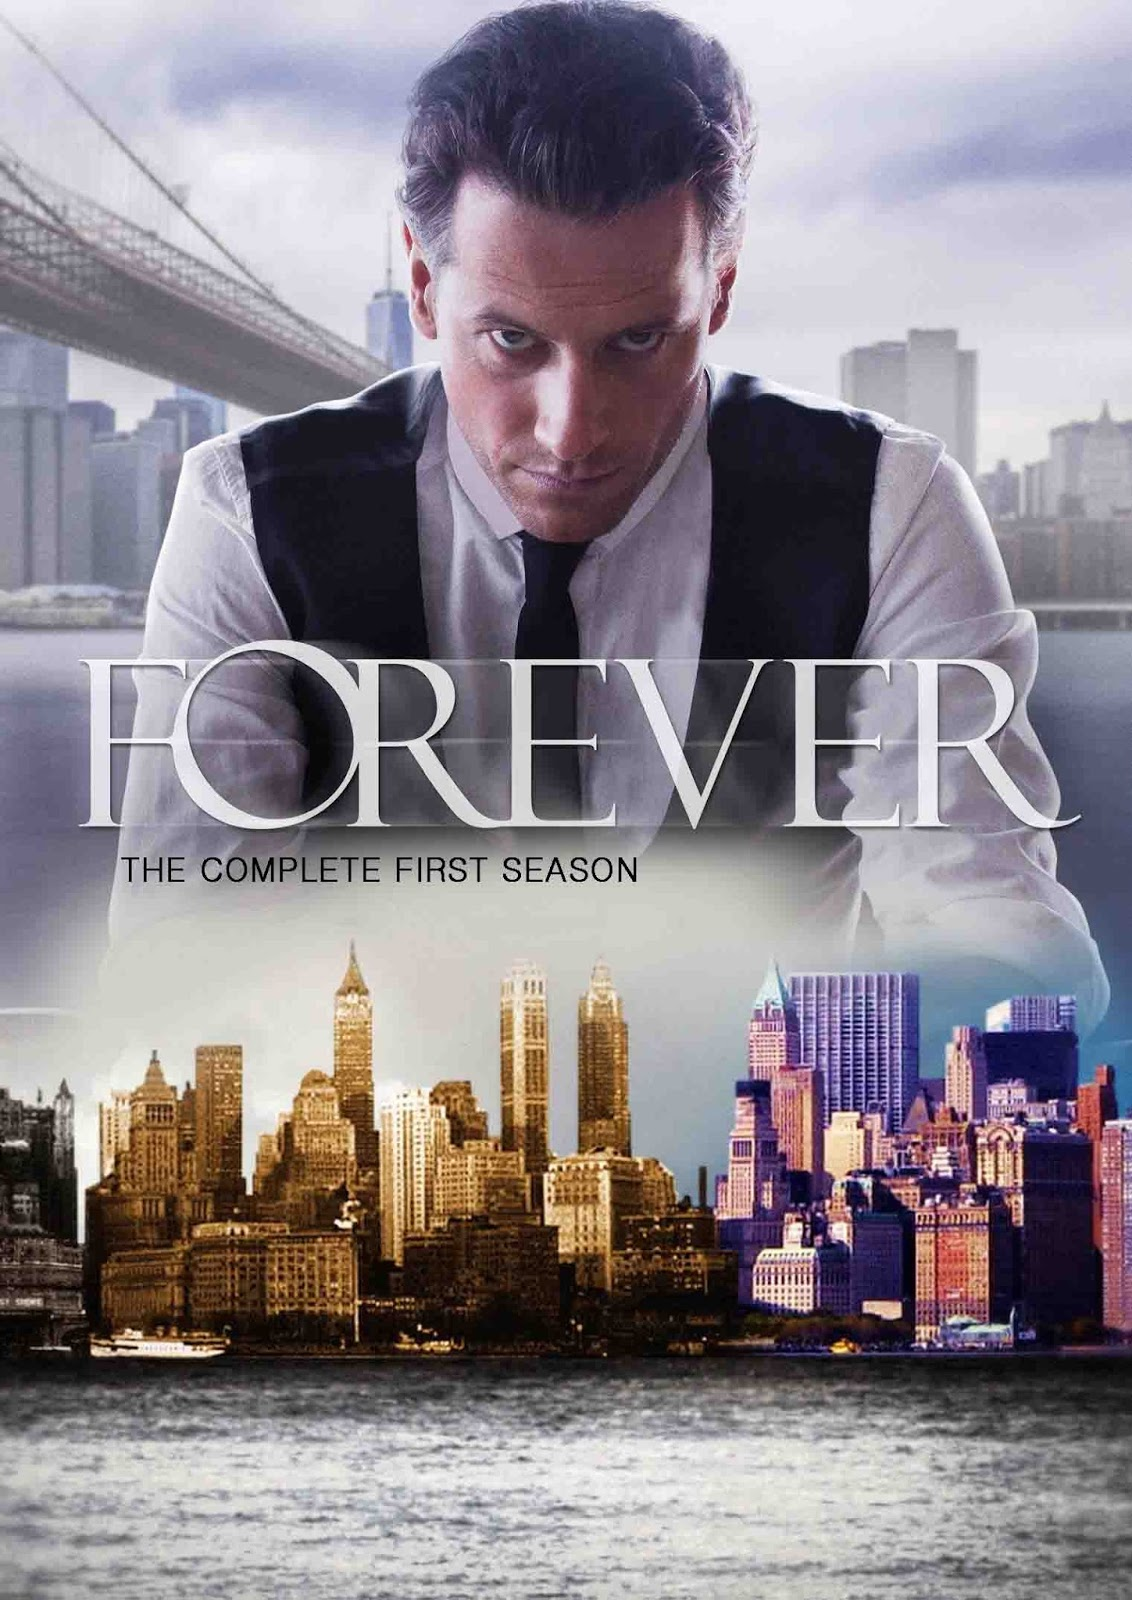 Forever: Uma Vida Eterna 1ª Temporada Torrent - WEB-DL 720p e 1080p Dual Áudio (2015)